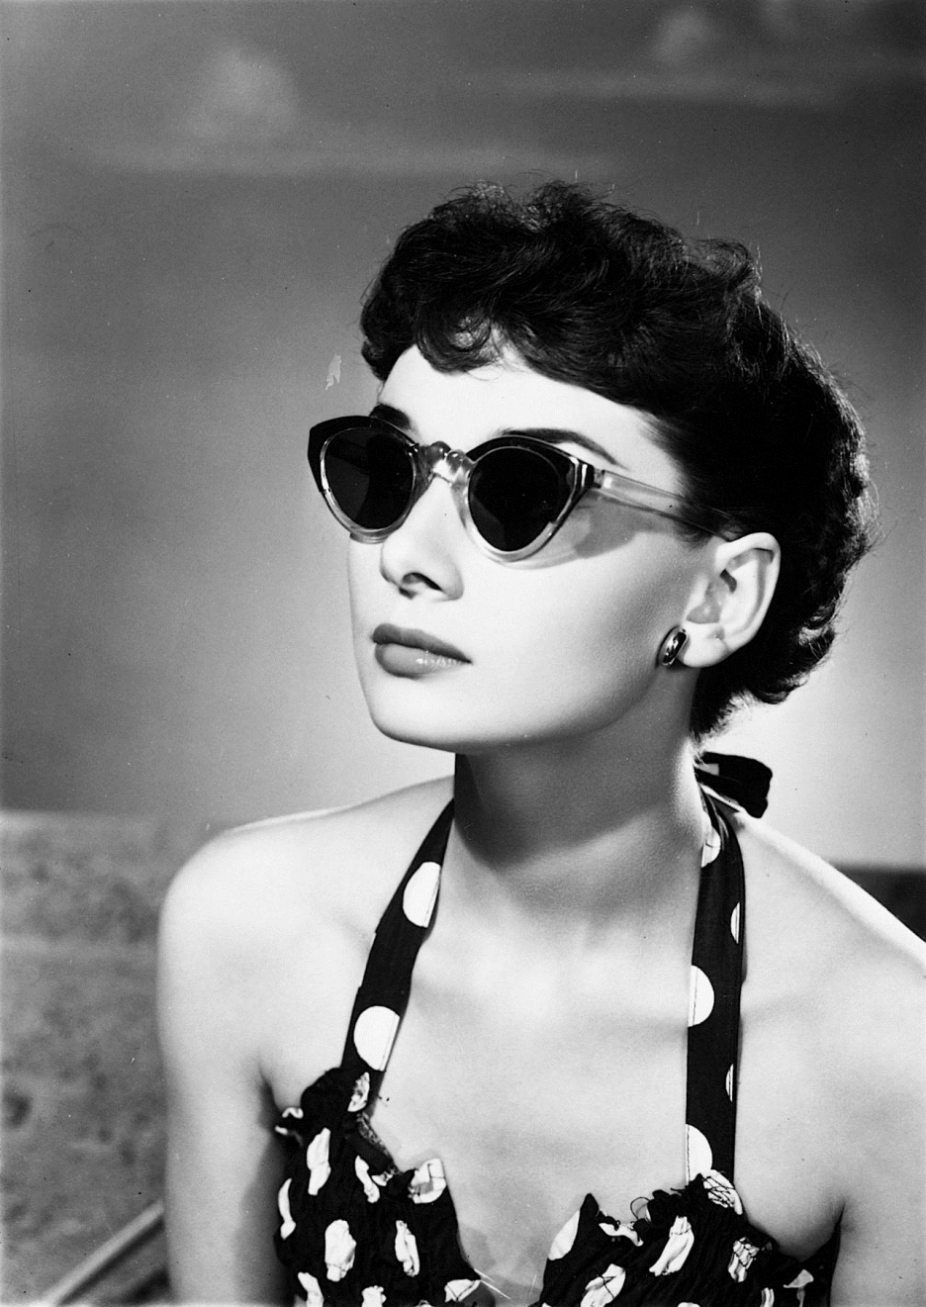 Edie sedgwick the style factory for Audrey hepburn pictures to buy